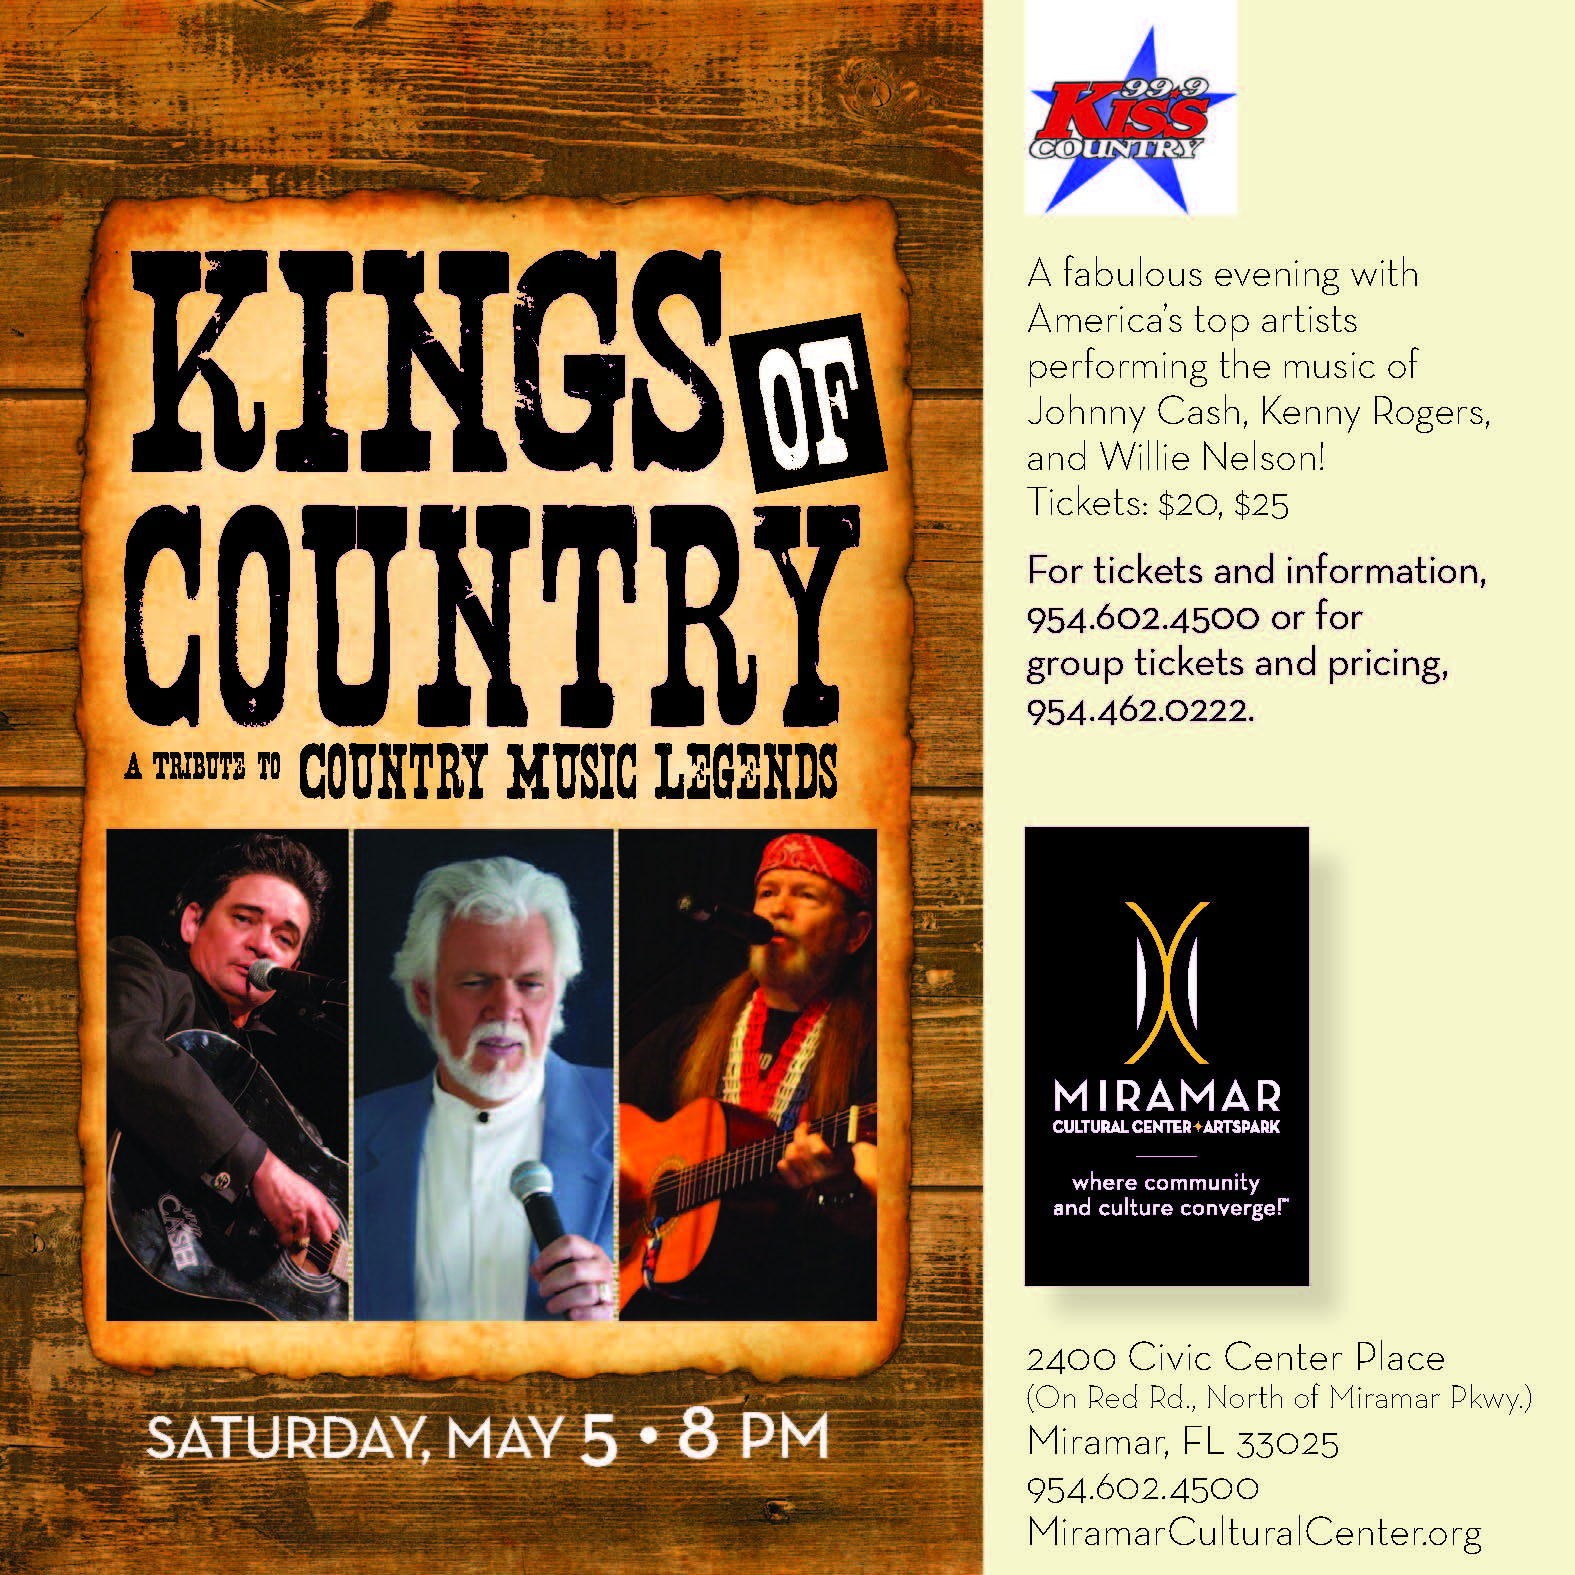 Kings Of Country A Tribute To Country Music Legends